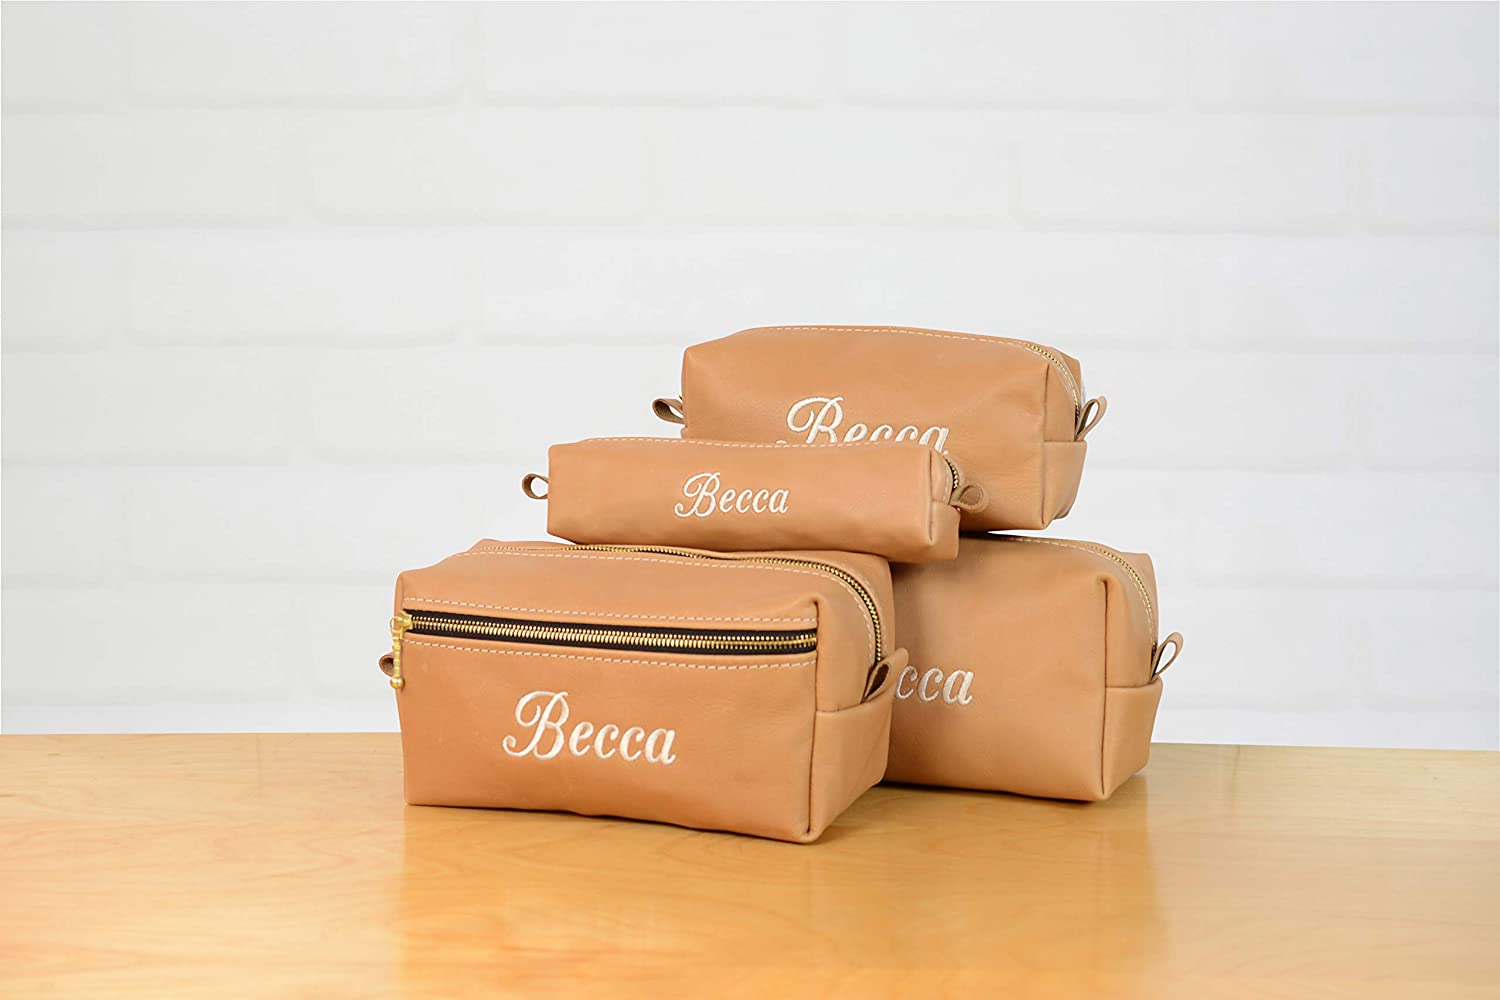 Personalized Leather Dopp Kit Gift Leather Toiletry Bag Leather Travel Bag Bridesmaids Gift